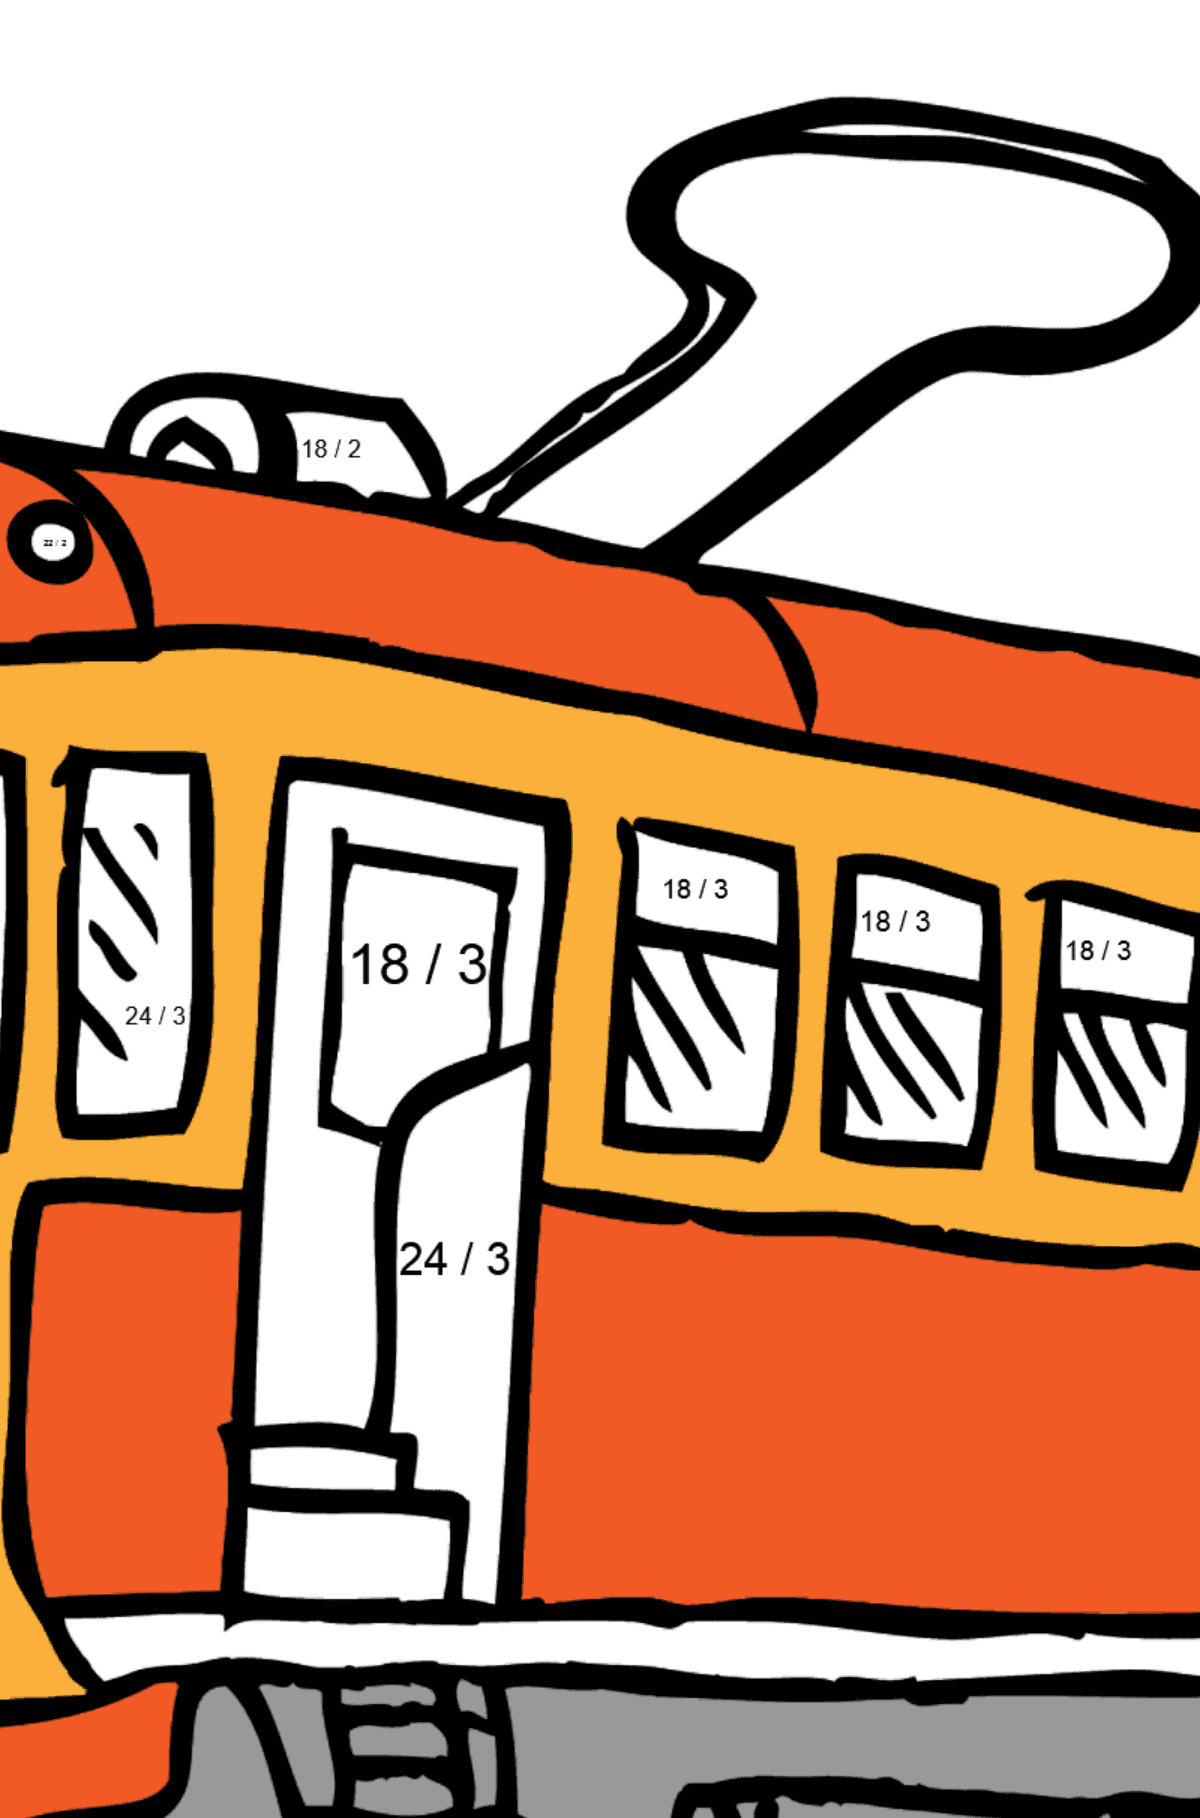 Simple Coloring Page - A Tram is Bored - Math Coloring - Division for Kids